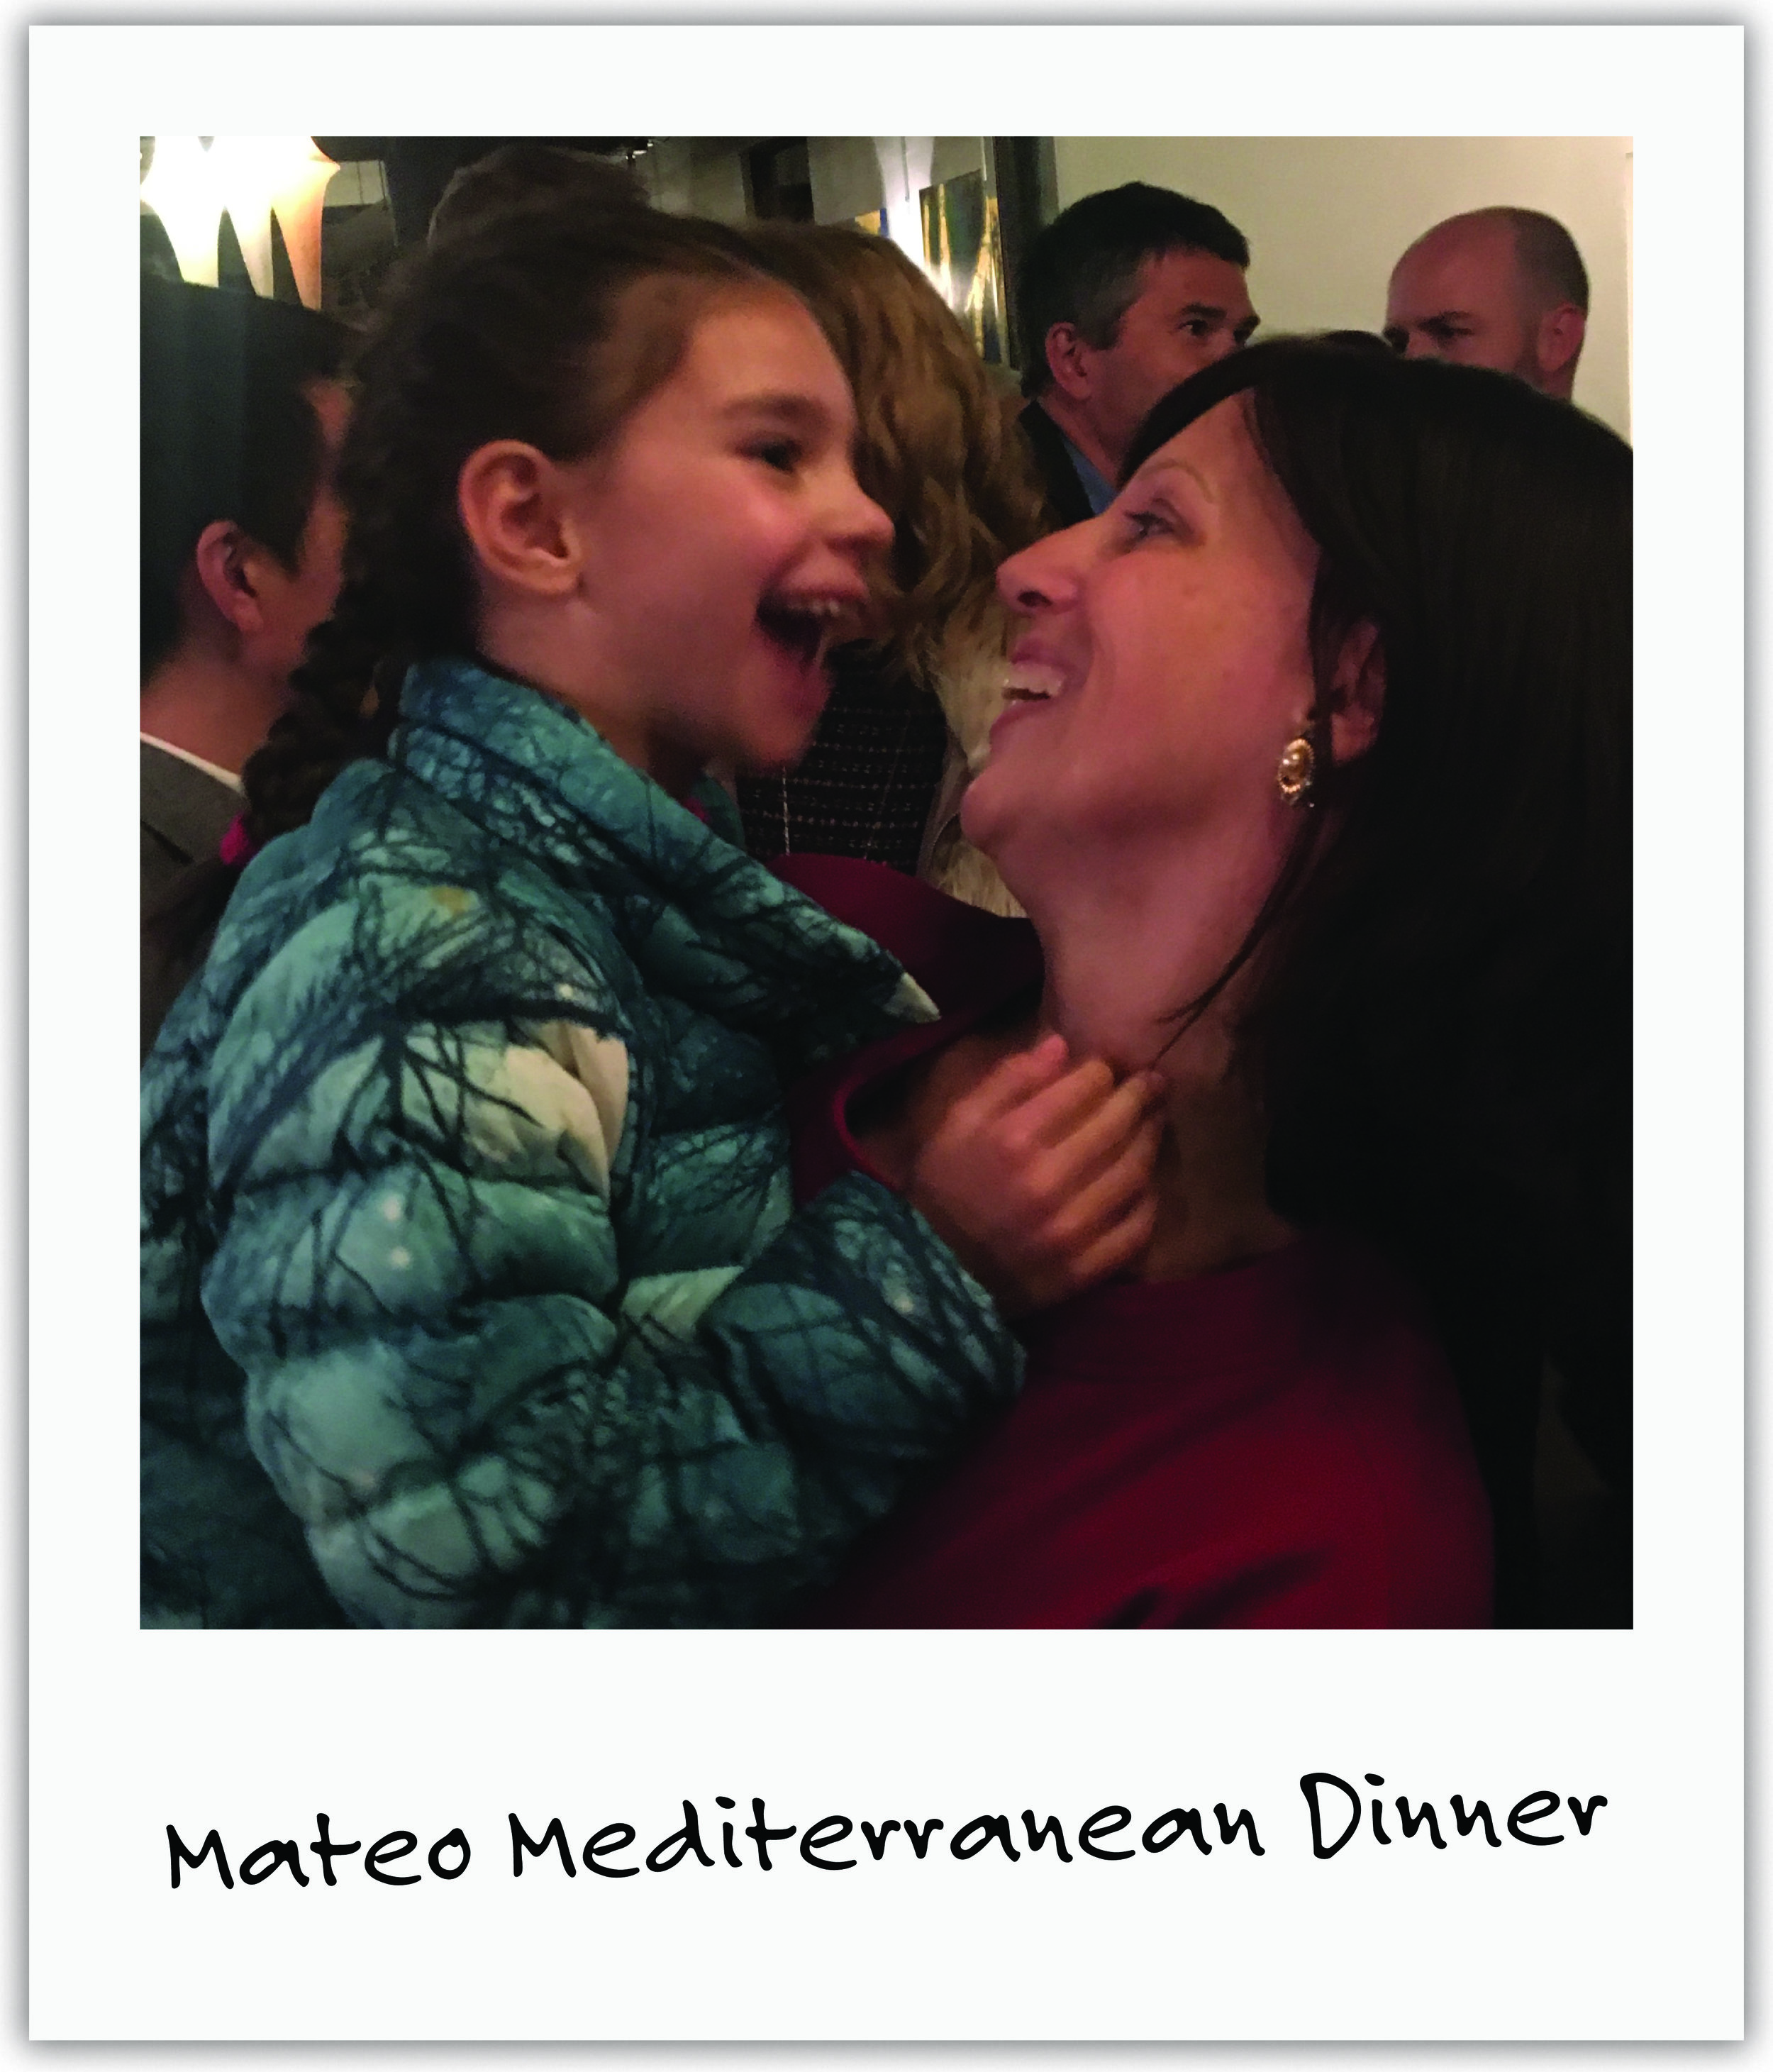 Dedicated friends Kate and Josh, together with the Laudisio family and Mateo restaurant, hosted an evening of fine food and wine for Mila's cause.